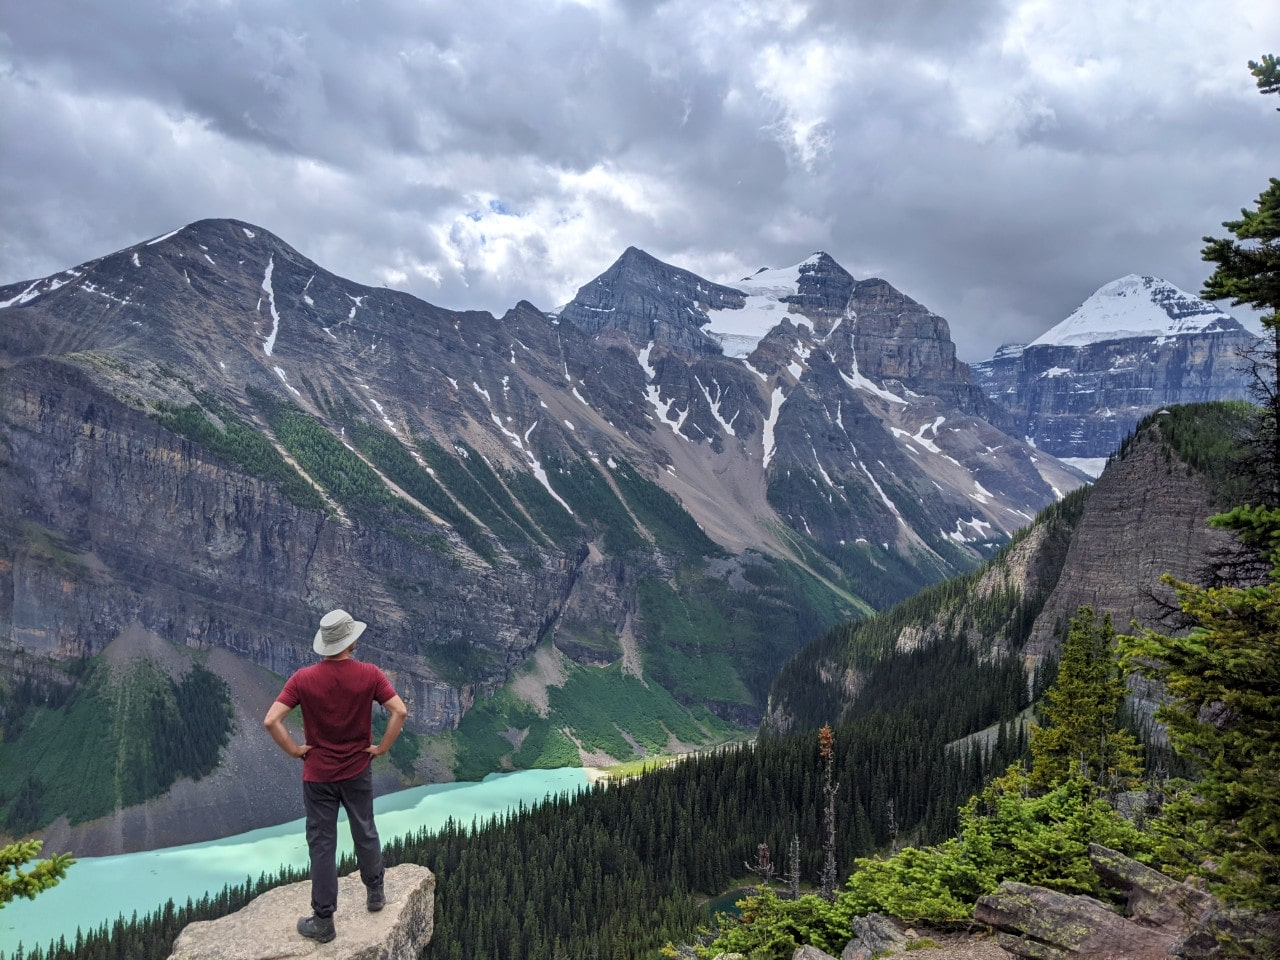 JR standing with back to camera looking down on bright Lake Louise, lined by snow capped mountains